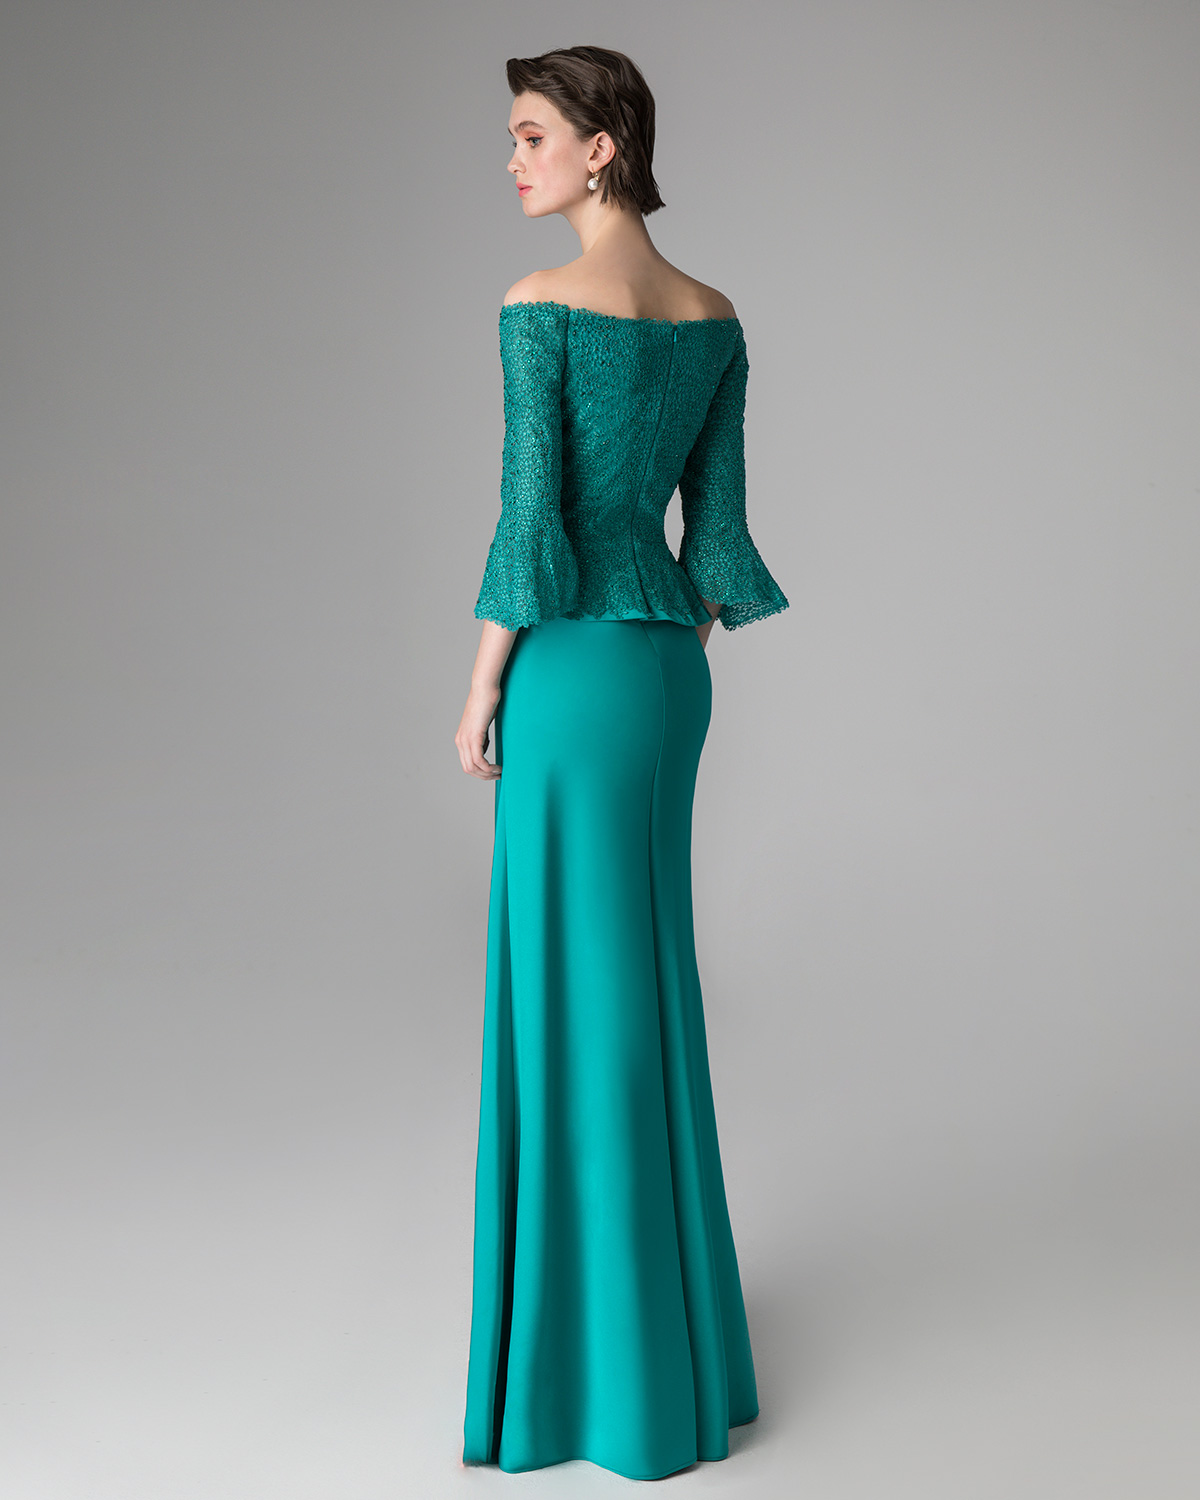 Classic Dresses / Long evening dress with lace top and long sleeves